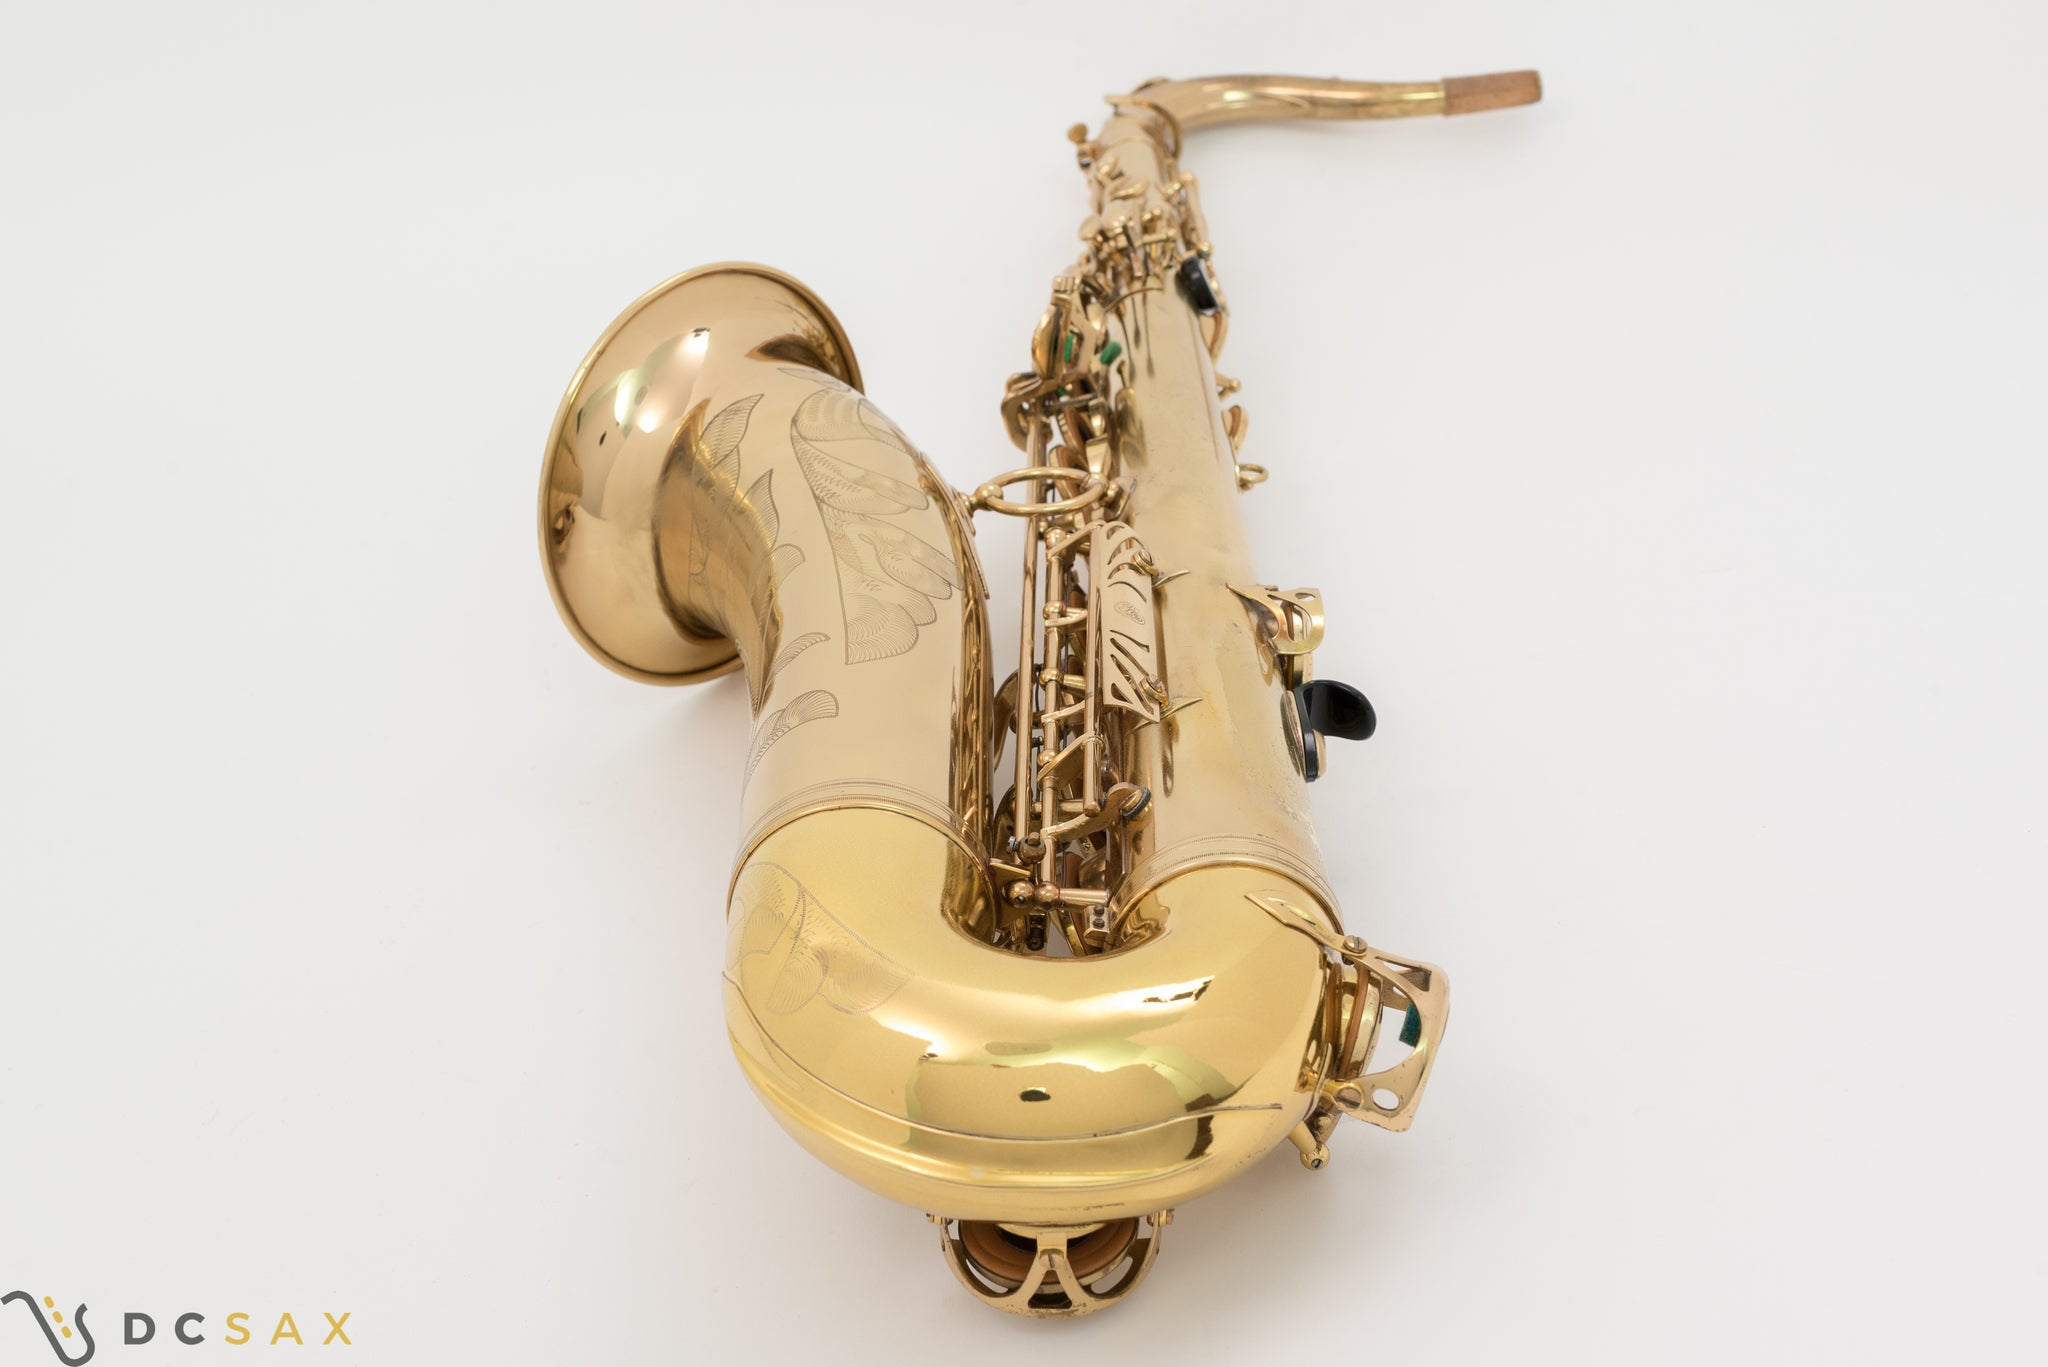 1969 171,xxx Selmer Mark VI Tenor Saxophone, 90% Original Lacquer, Just Serviced, Video